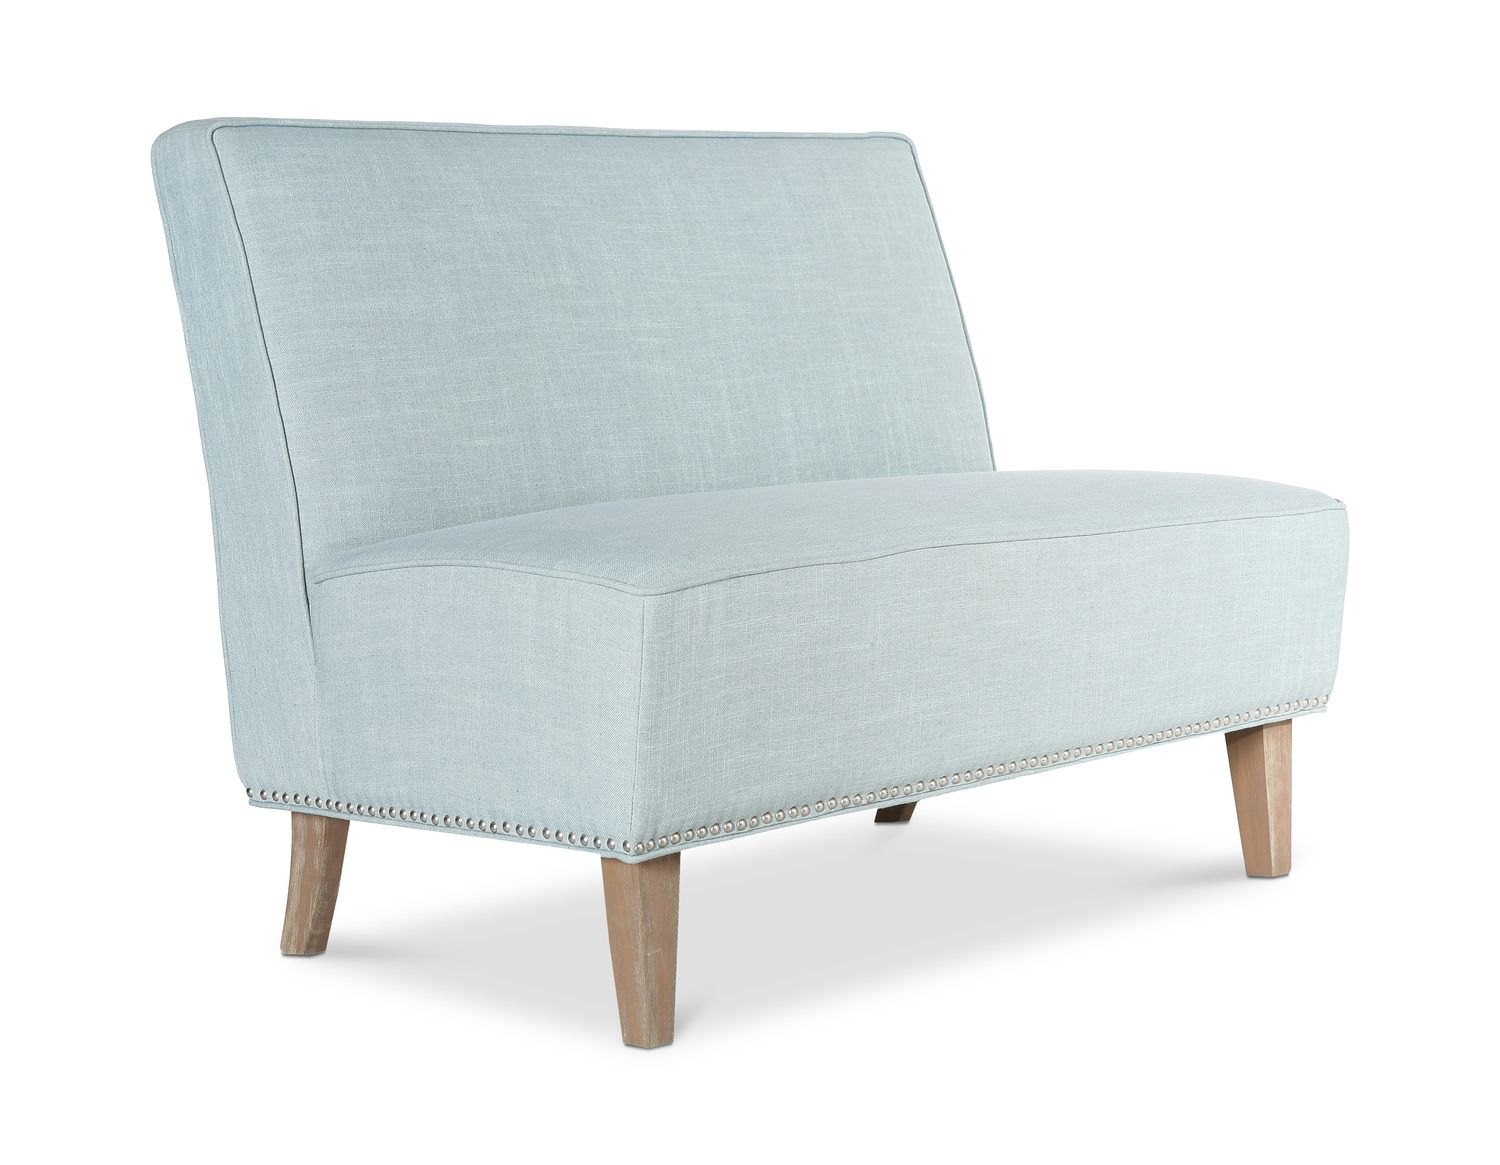 Klein Loveseat | HOM Furniture | Furniture Stores In Minneapolis Minnesota  U0026 Midwest